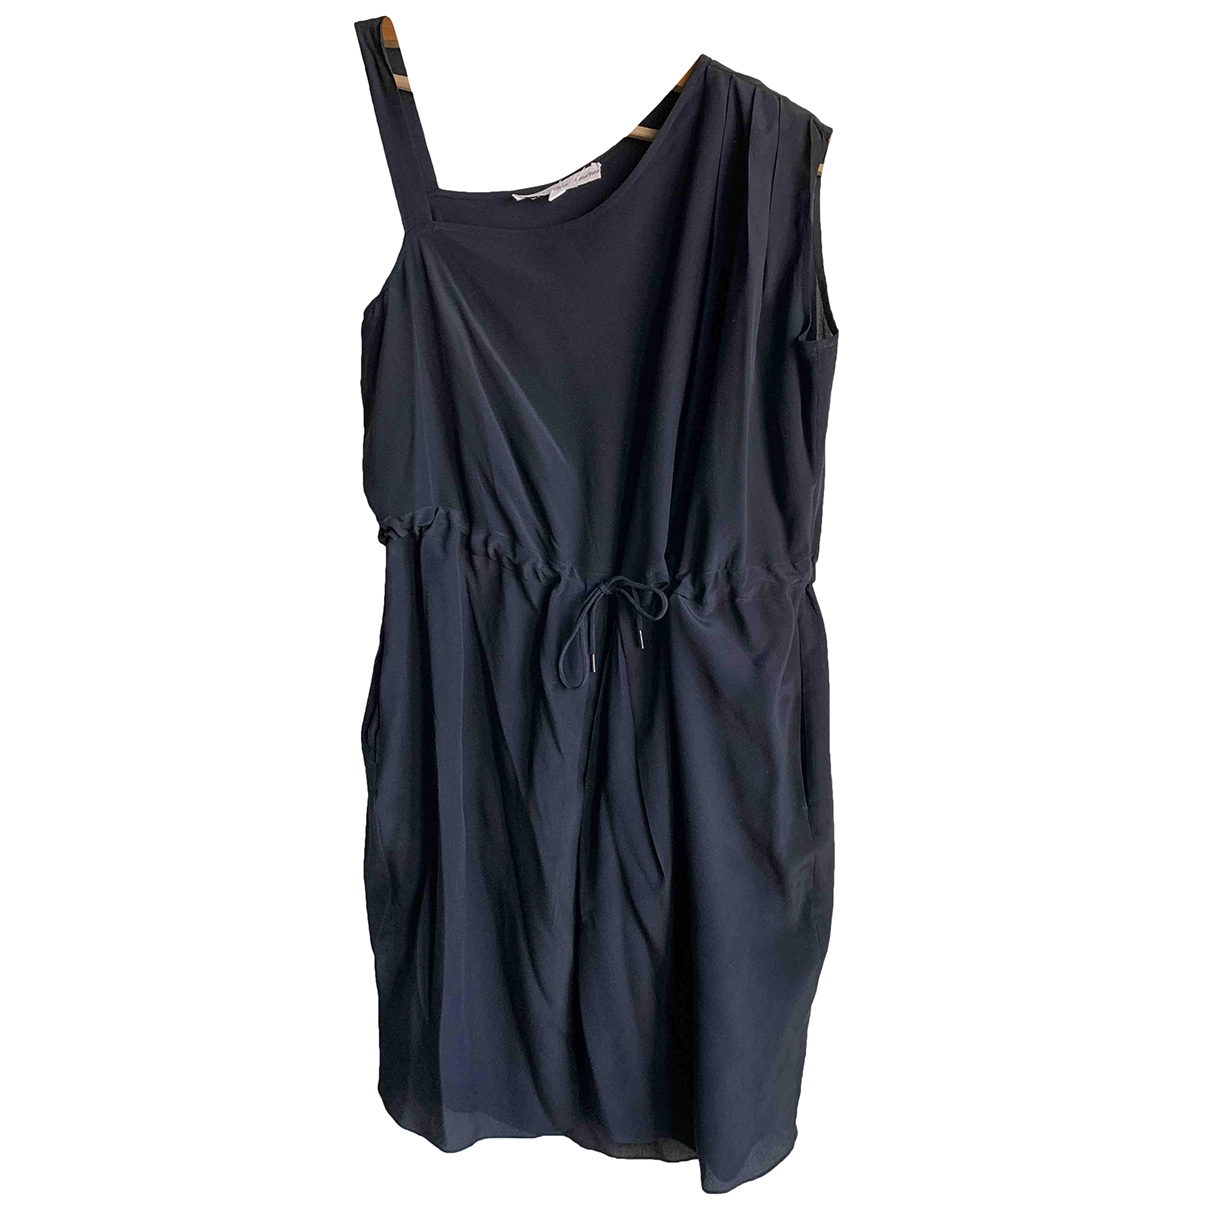 & Stories \N Black Silk dress for Women 36 FR